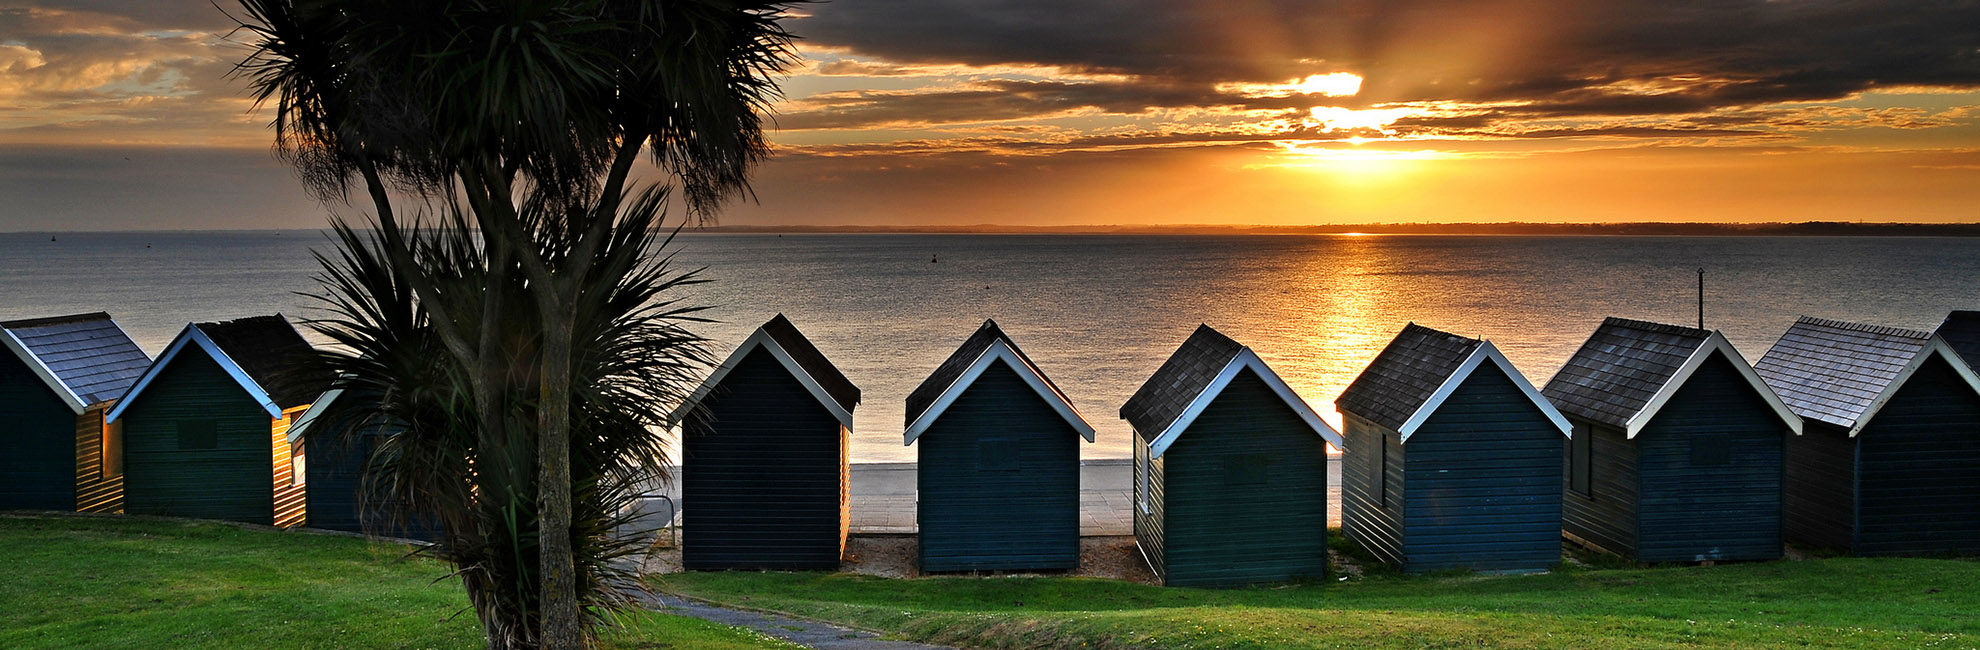 Beach huts overlooking a sunset over the sea